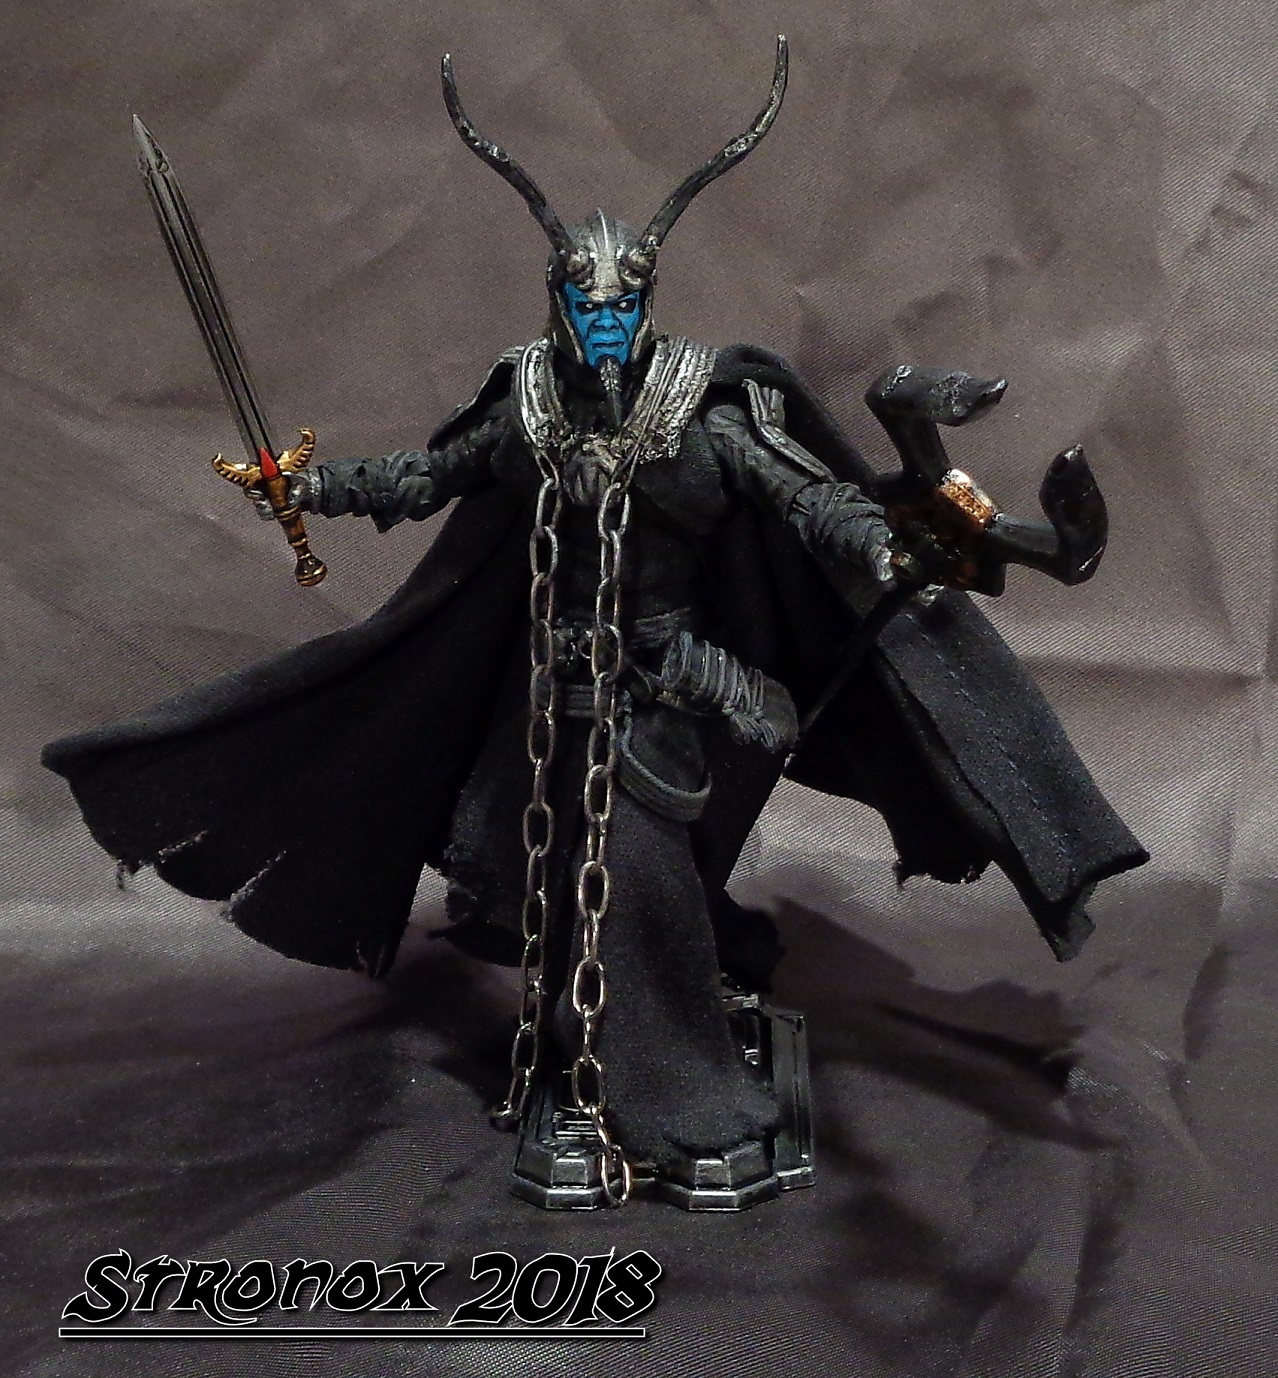 Stronox Custom Figures Star Wars Marka Ragnos You can help star wars: star wars marka ragnos